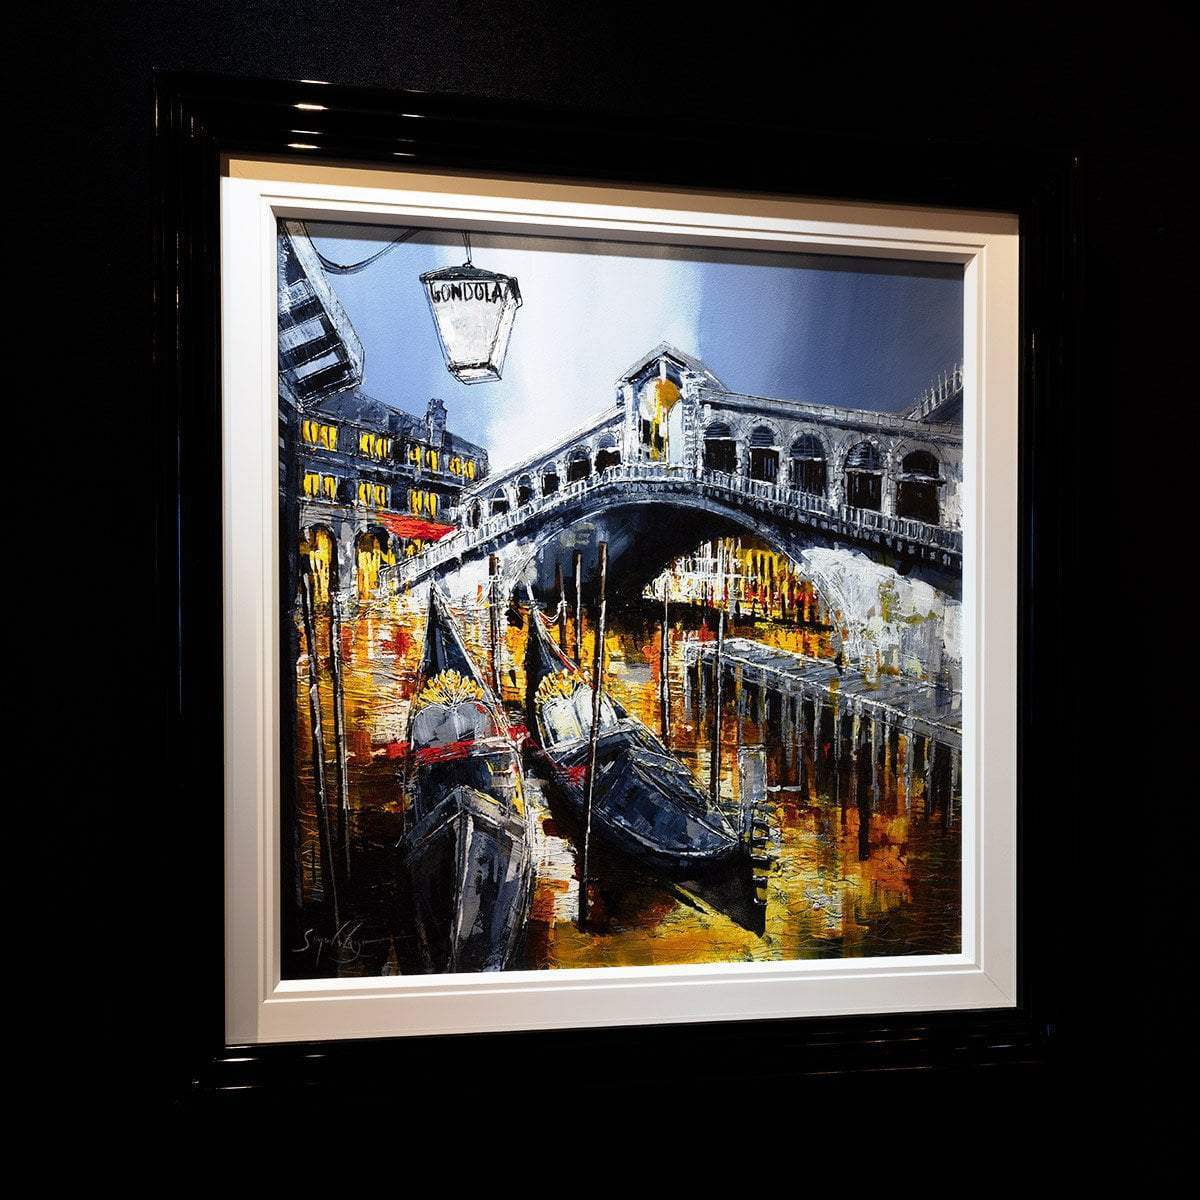 A Tour of Venice - Original Simon Wright Framed